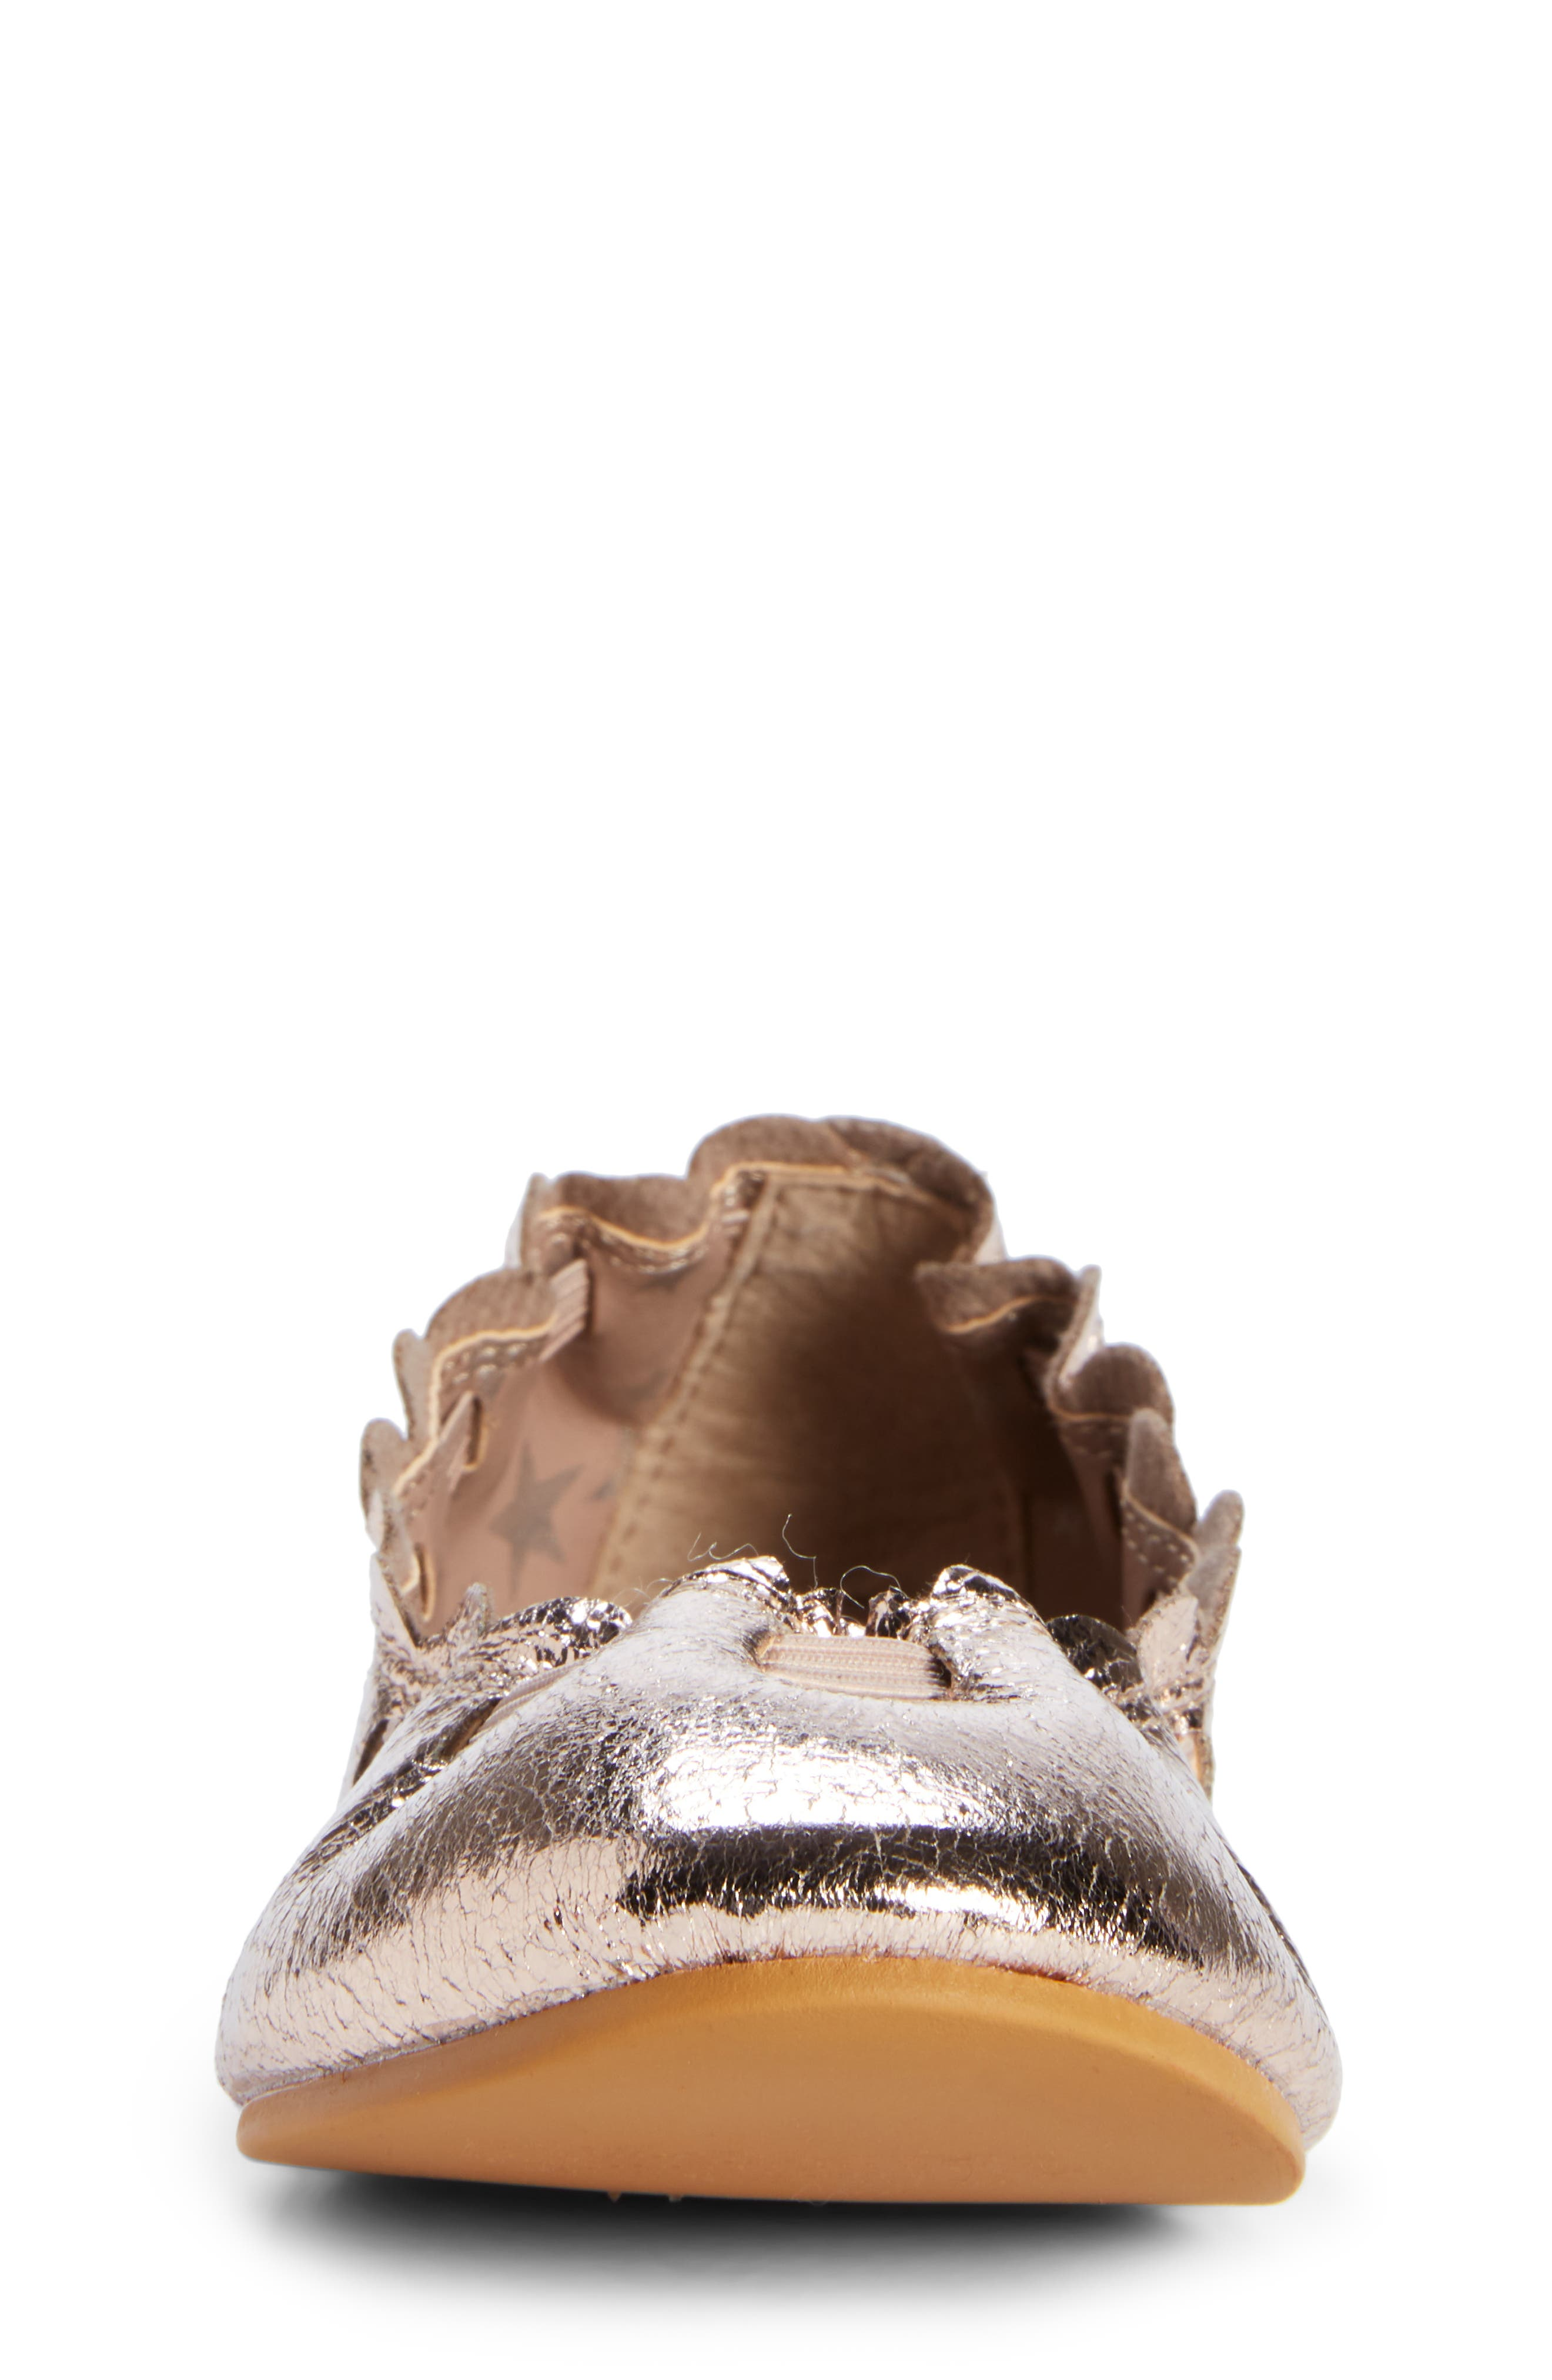 Scalloped Ballet Flat,                             Alternate thumbnail 4, color,                             ROSE GOLD CRACKLE FAUX LEATHER